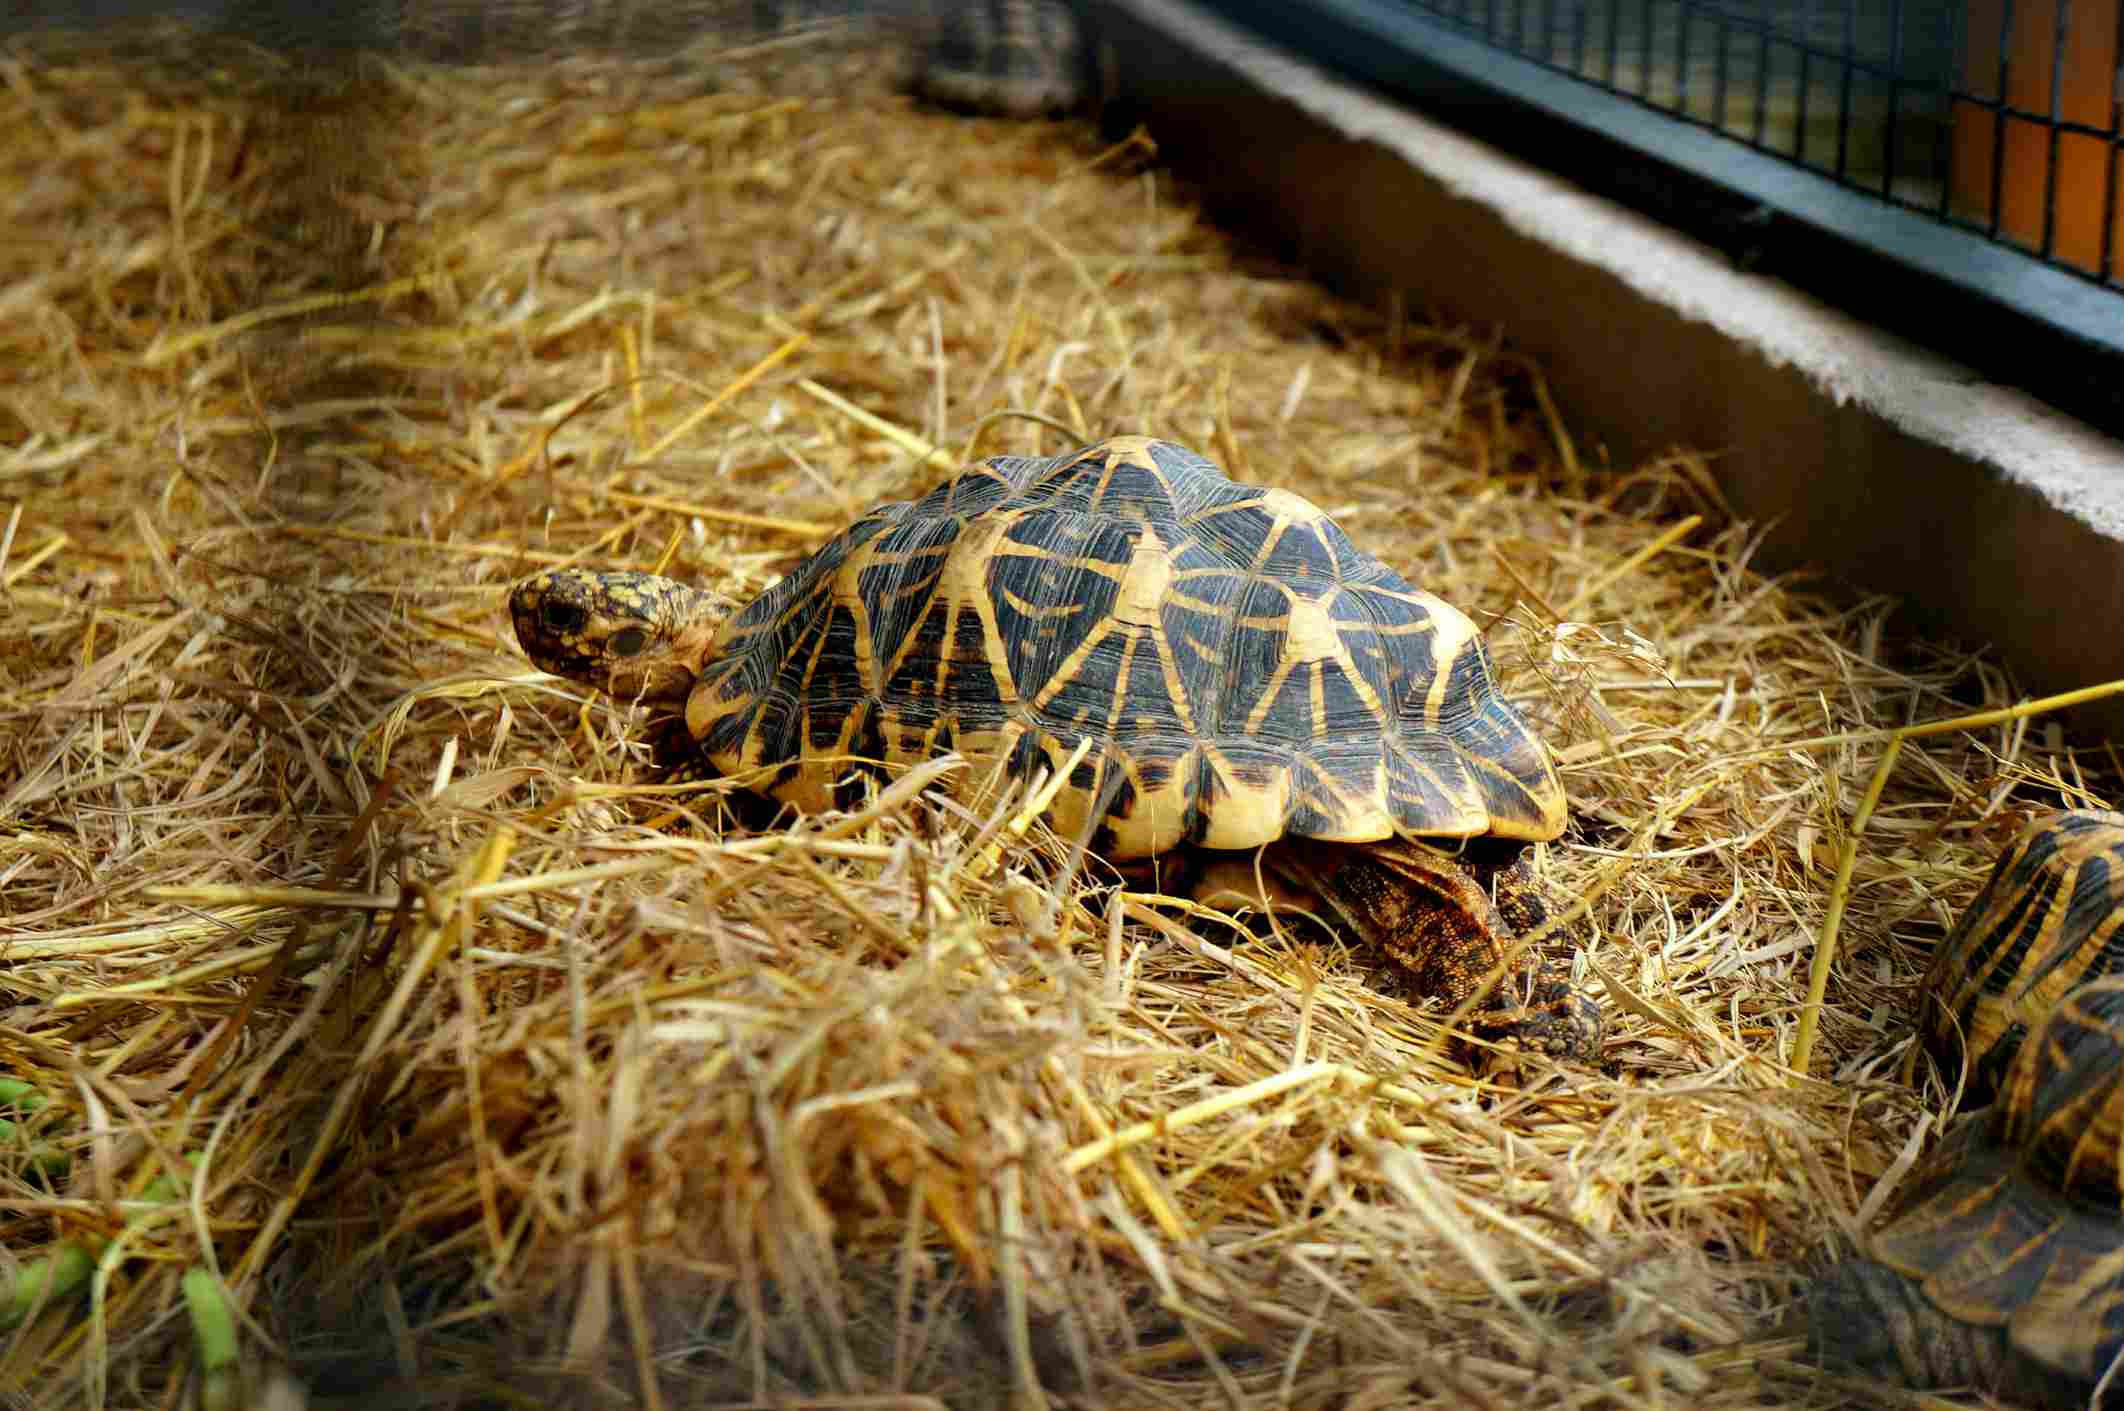 How to Take Care of Turtles and Tortoises